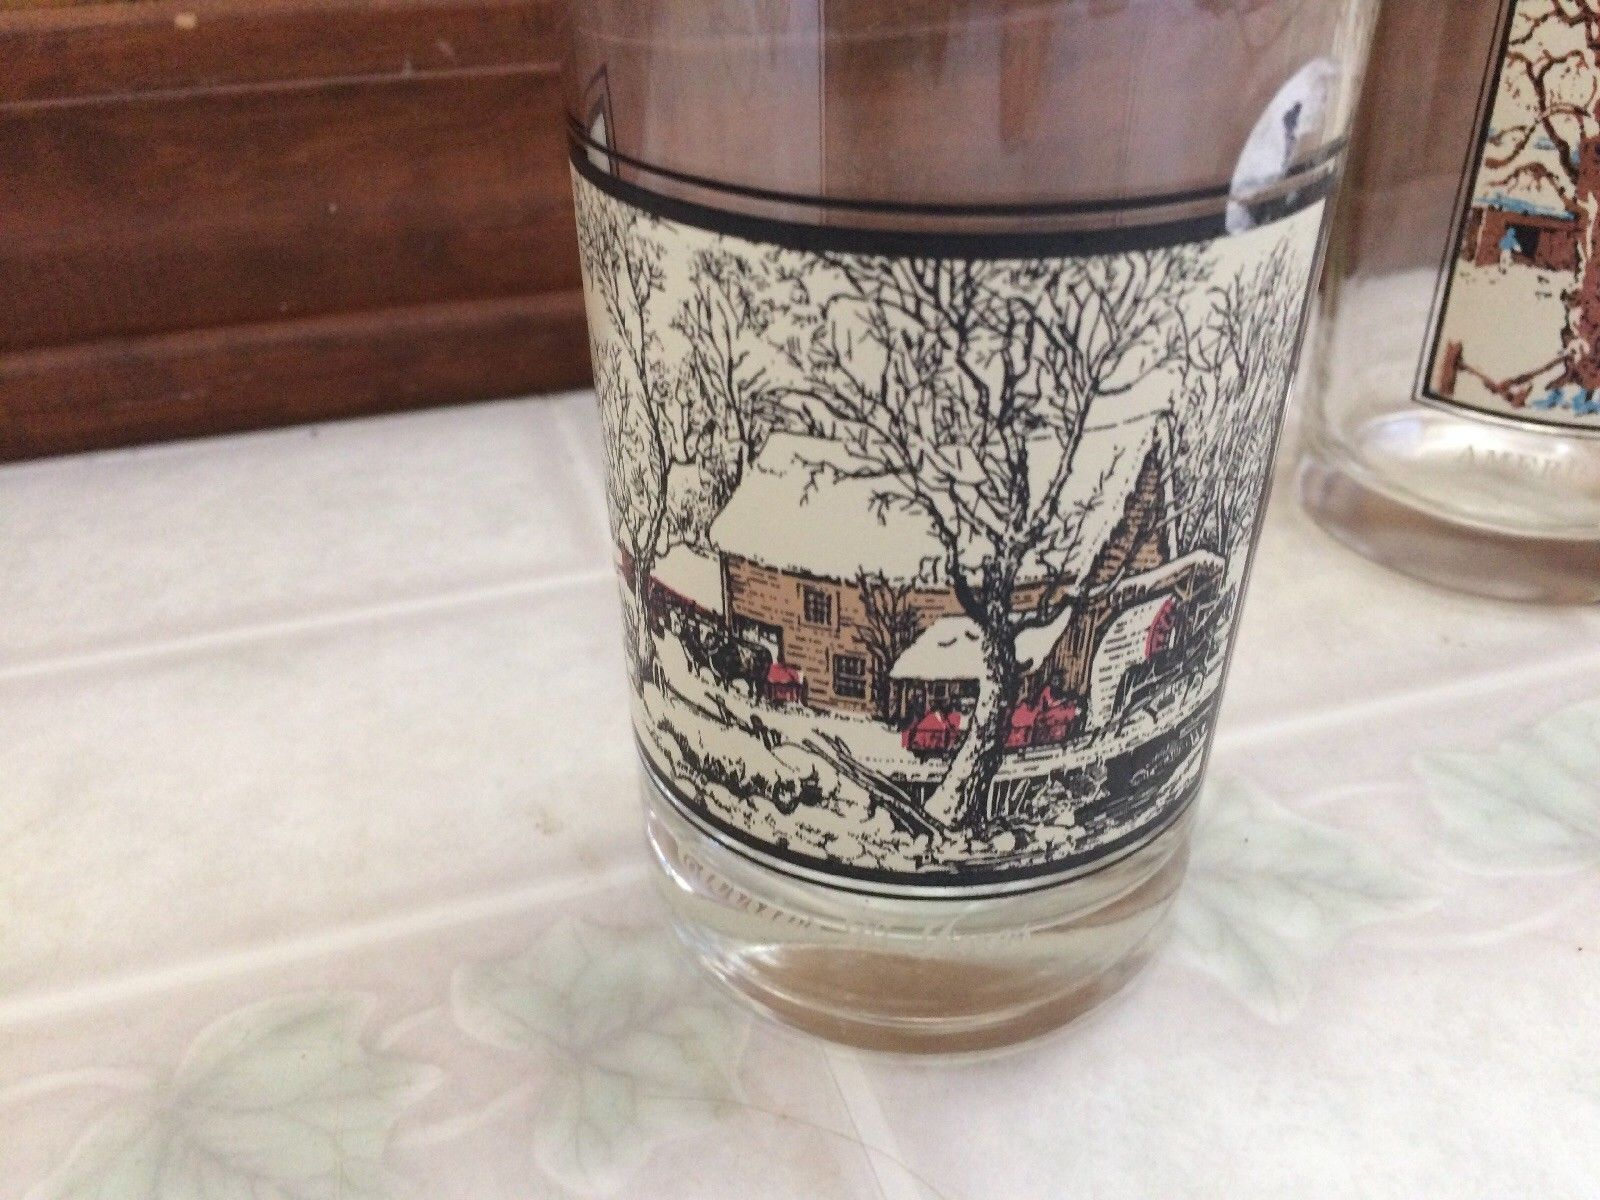 1981 Set Of 2 ARBY'S CURRIER AND IVES Tumblers Frozen Up & Homestead Winter image 2